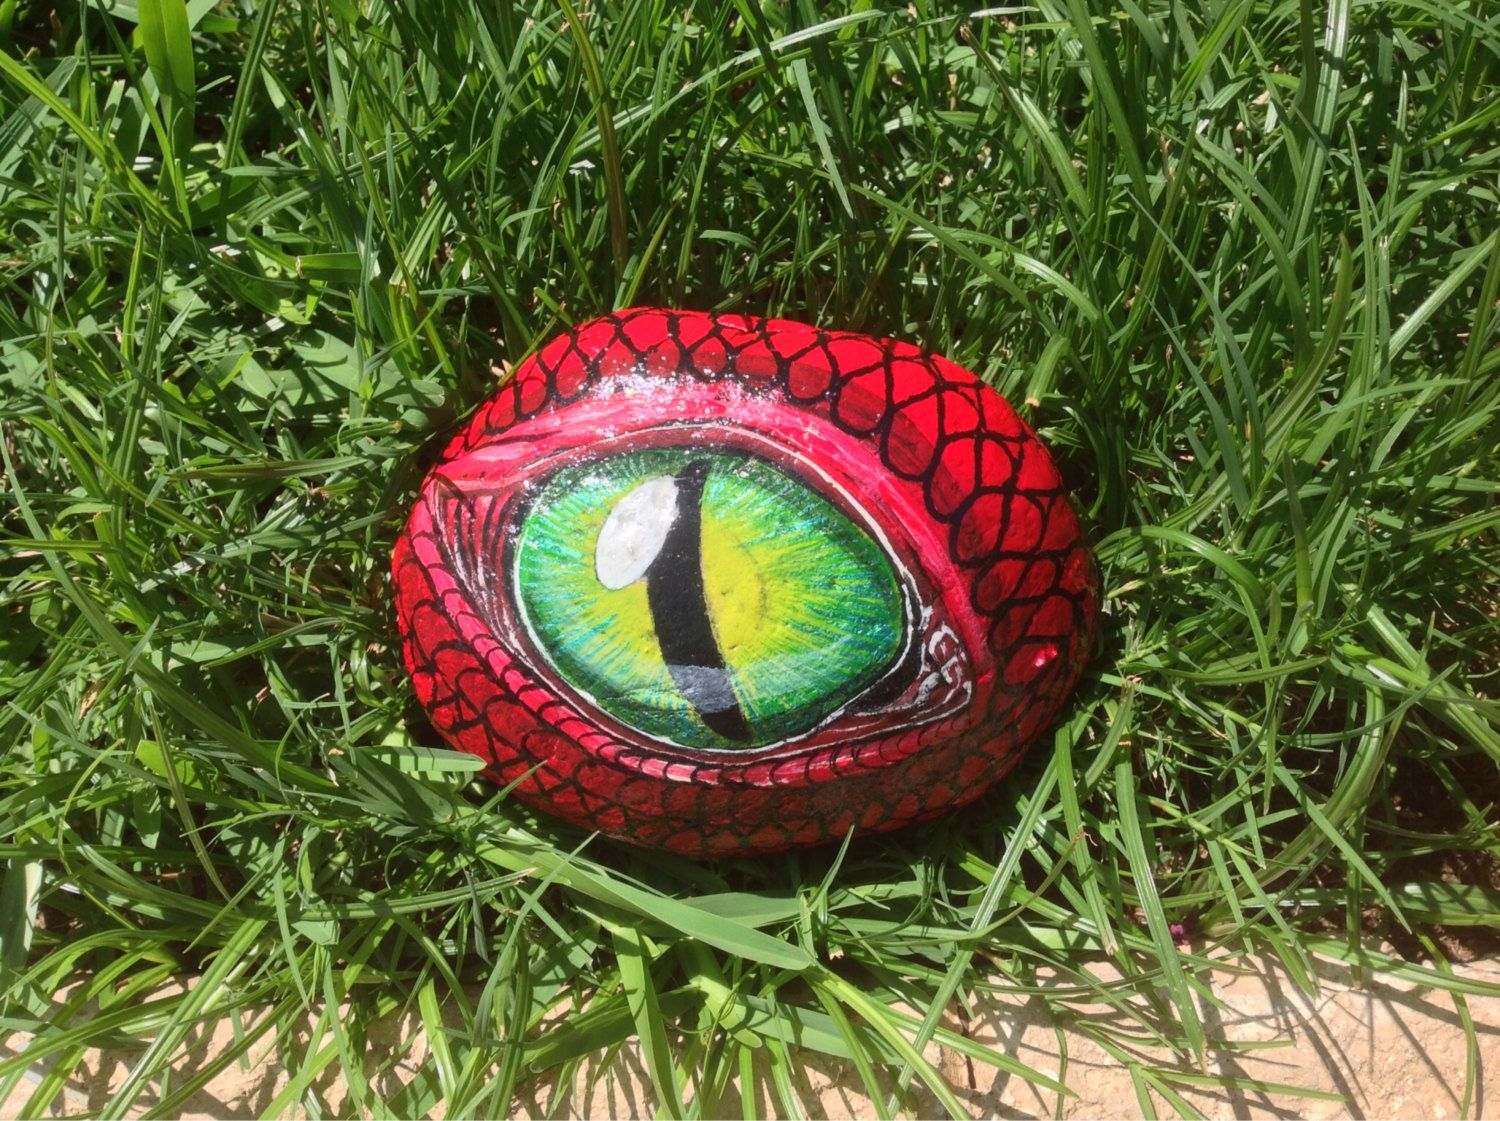 Dragon S Eye Hand Painted Garden River Rock 5 5 Quot X 4